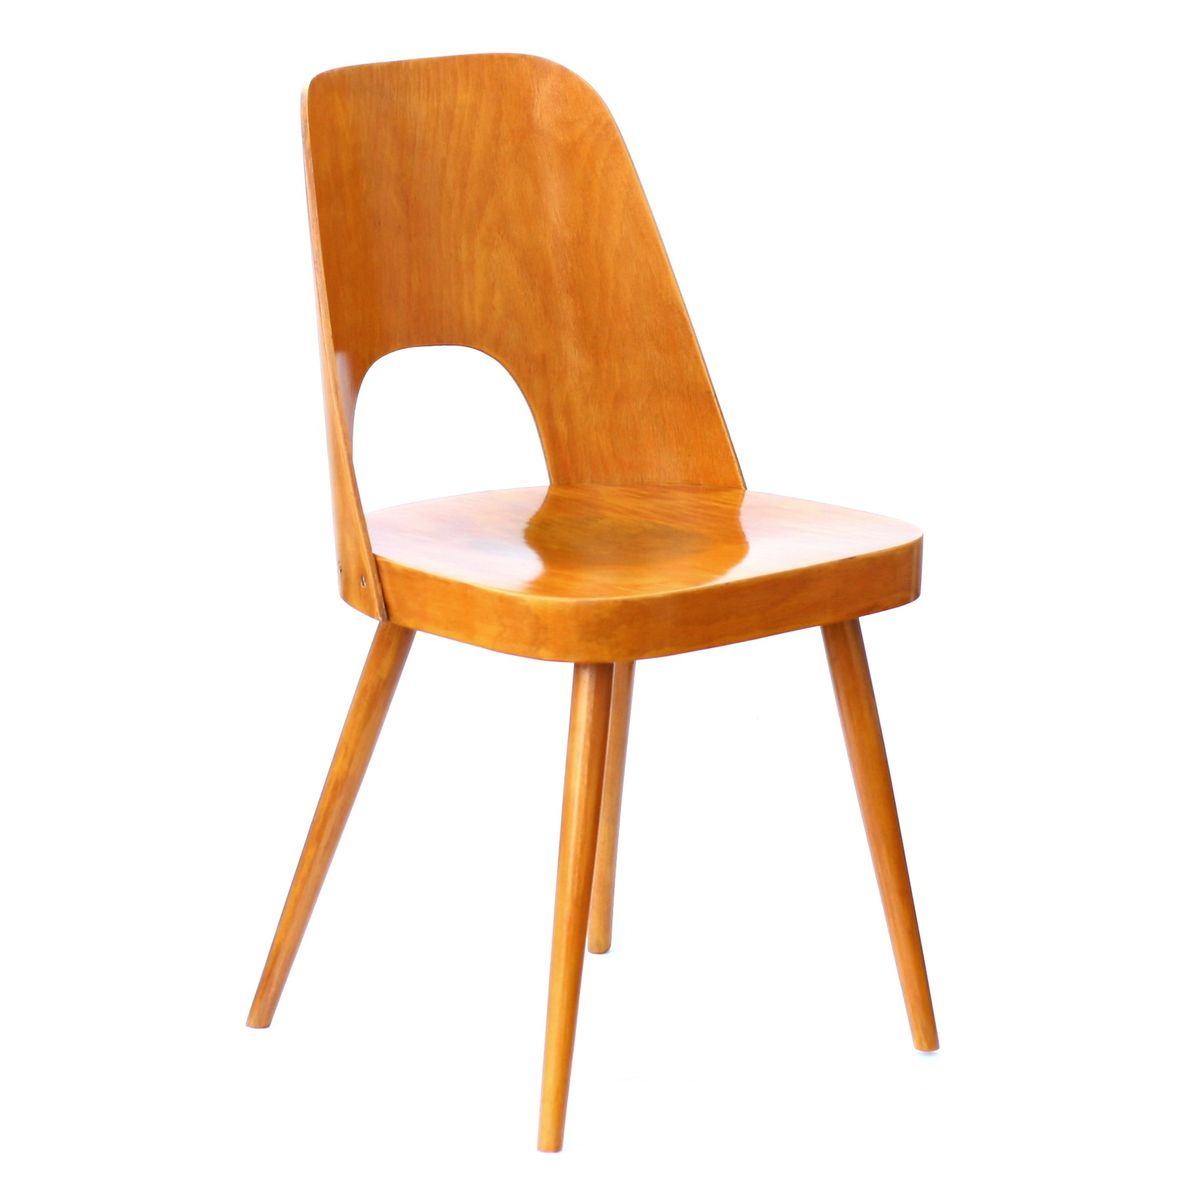 Vintage Wooden Chair by Oswald Haerdtl for TON for sale at Pamono